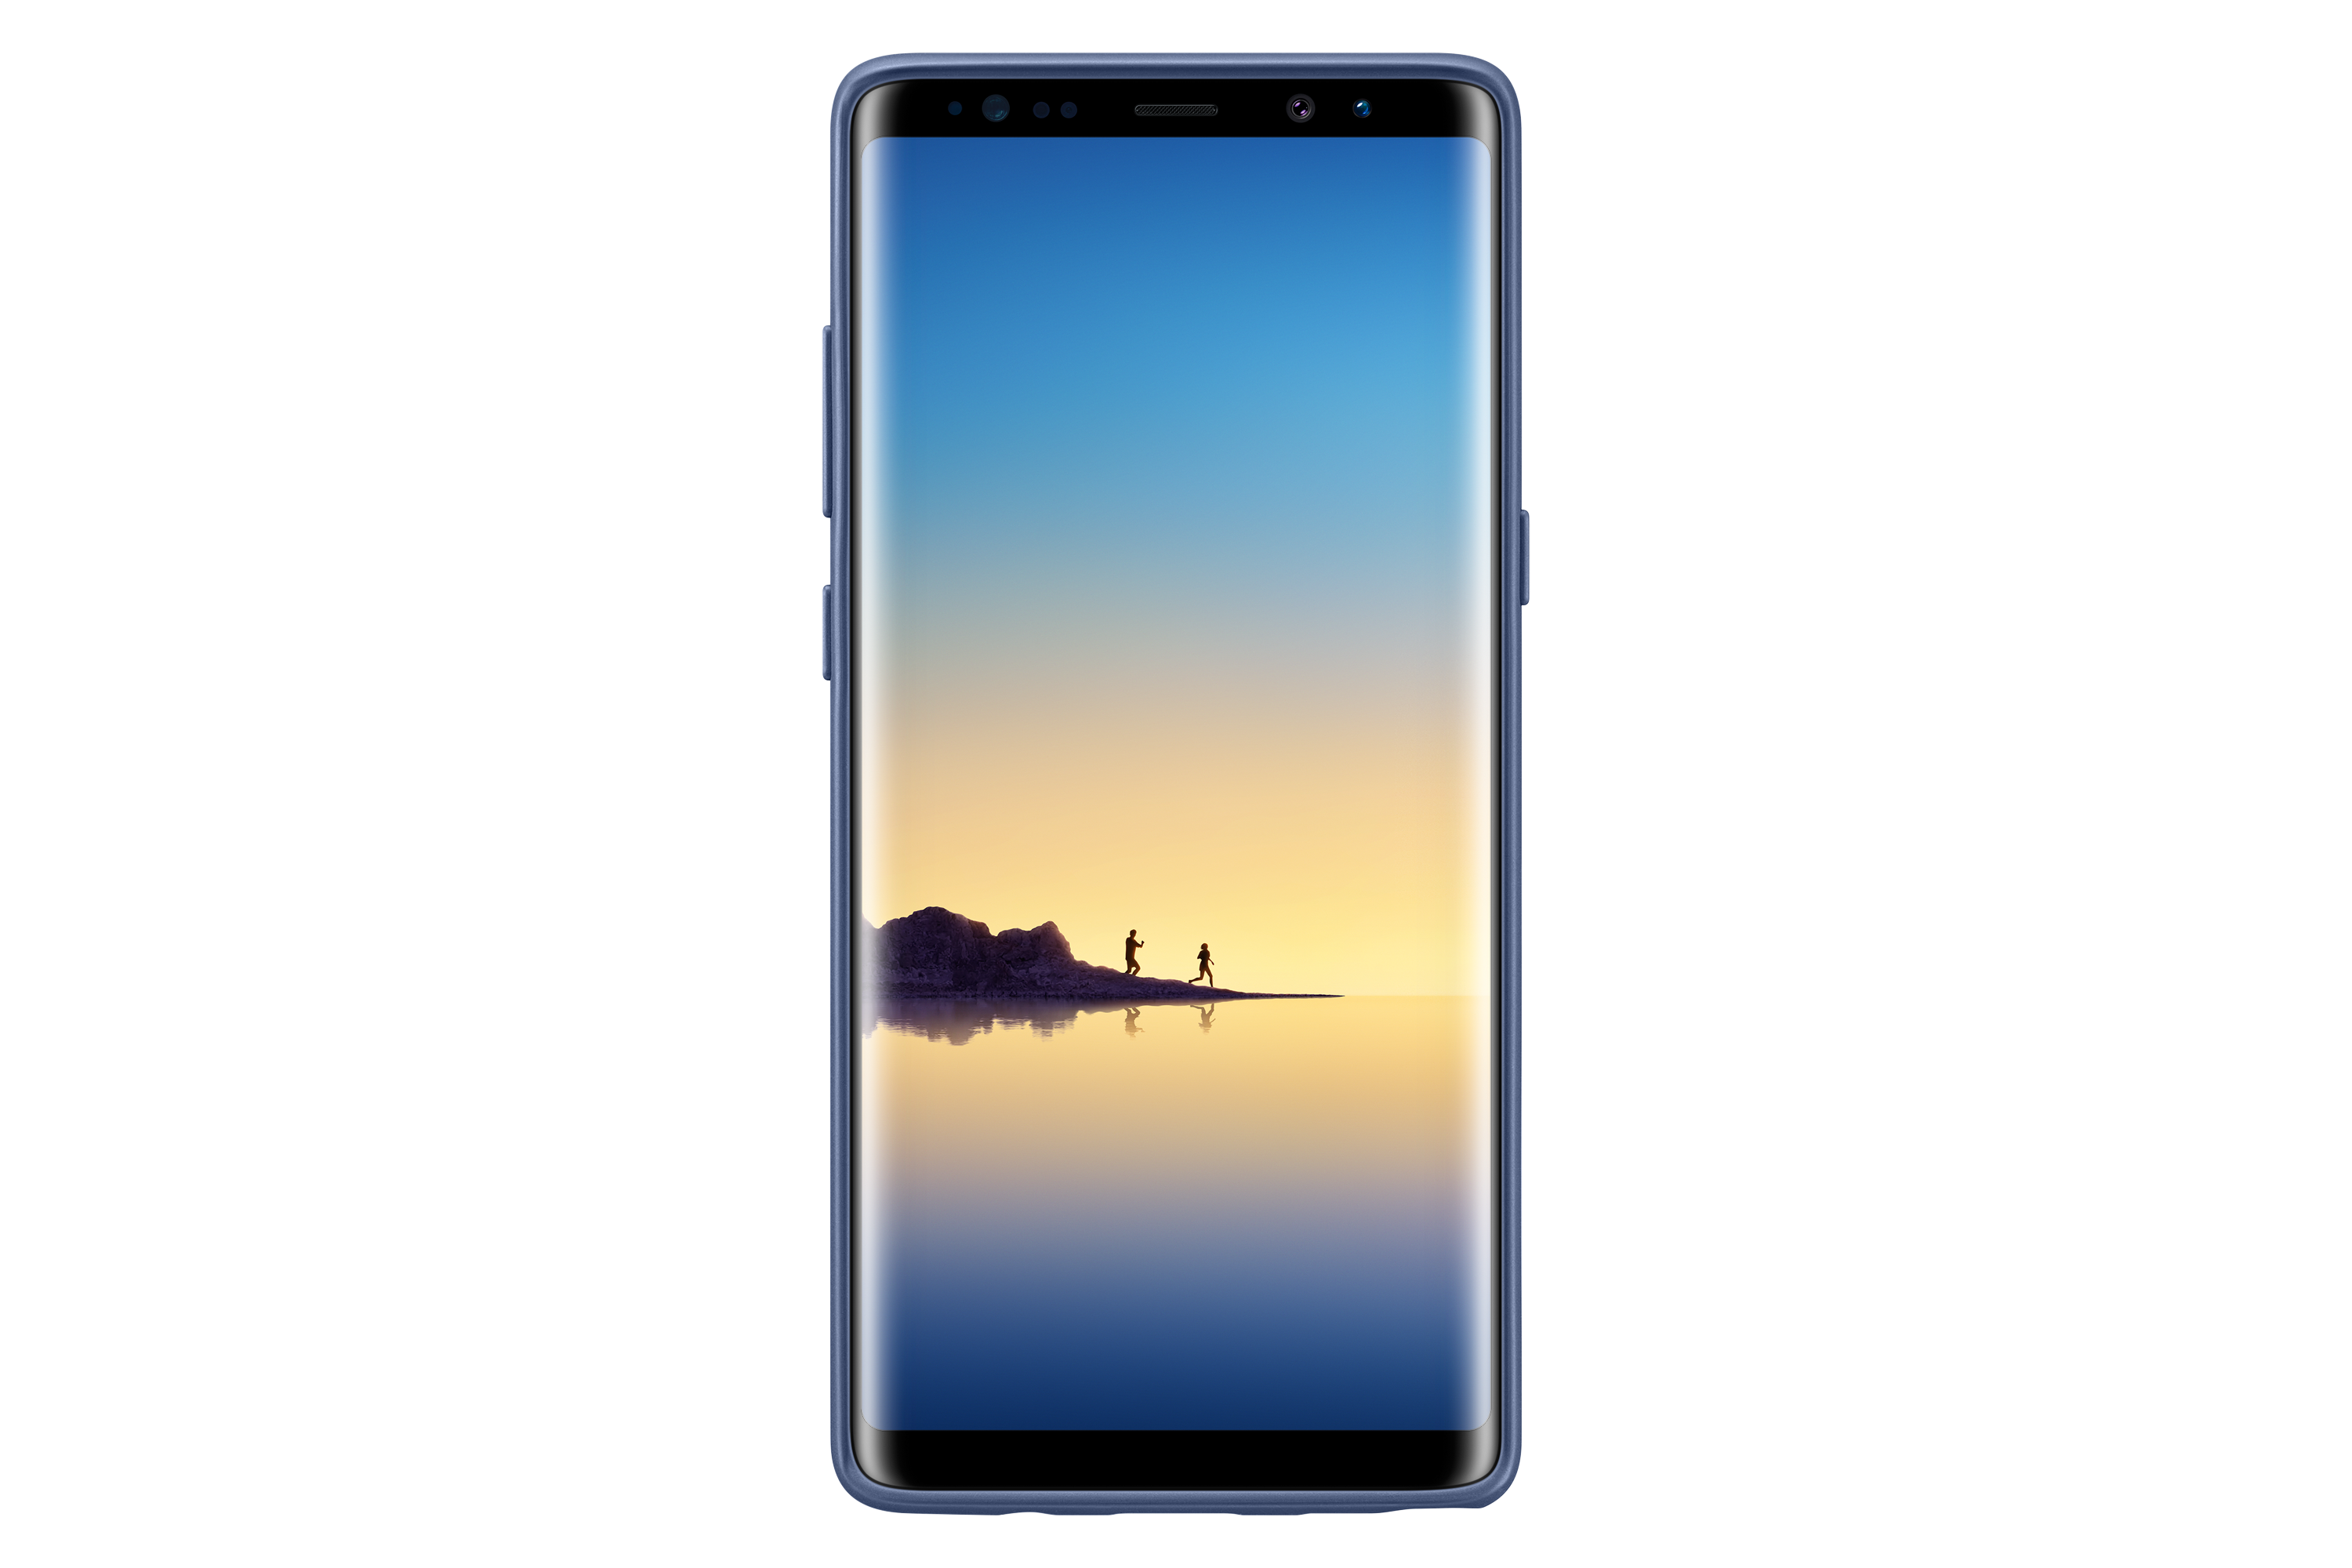 Galaxy Note8 - Protective Standing Cover